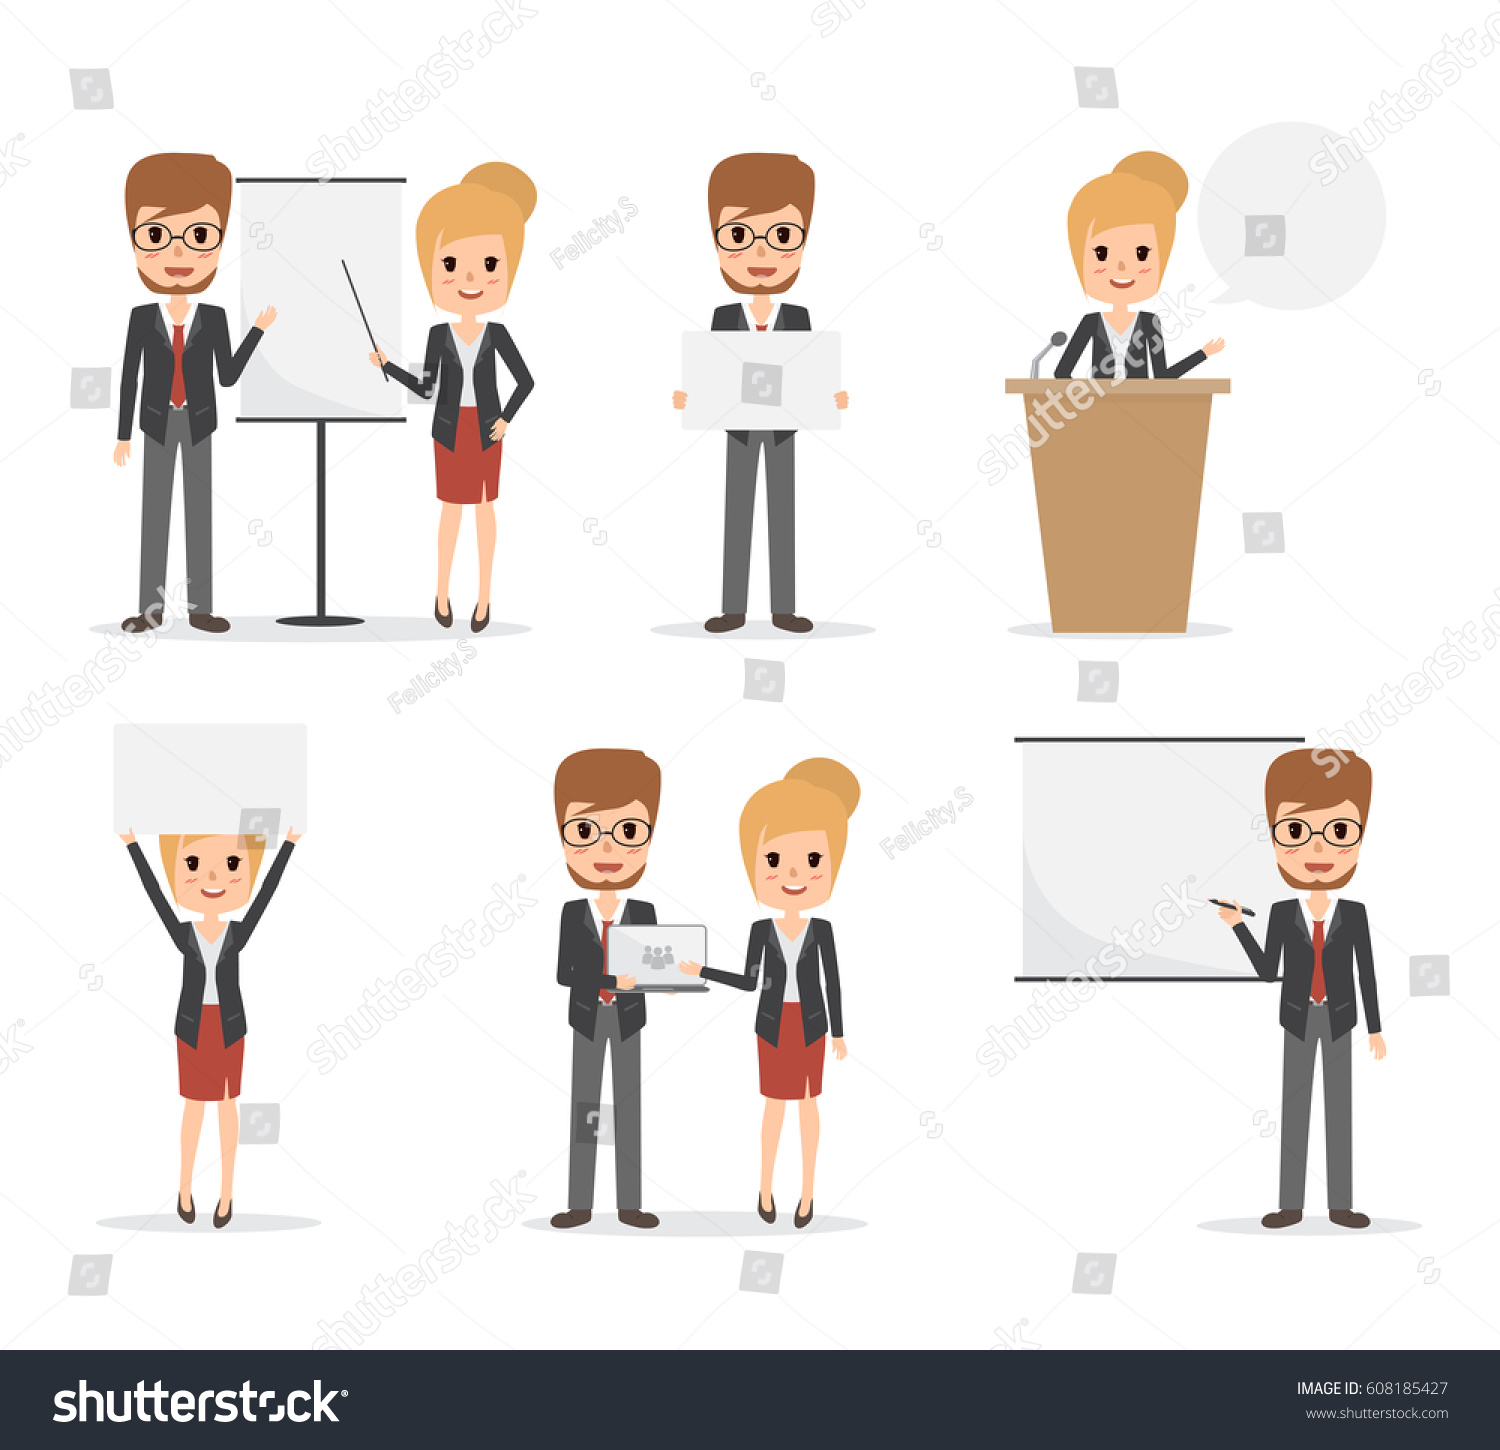 Character Design Presentation : Businessman business woman job character office stock